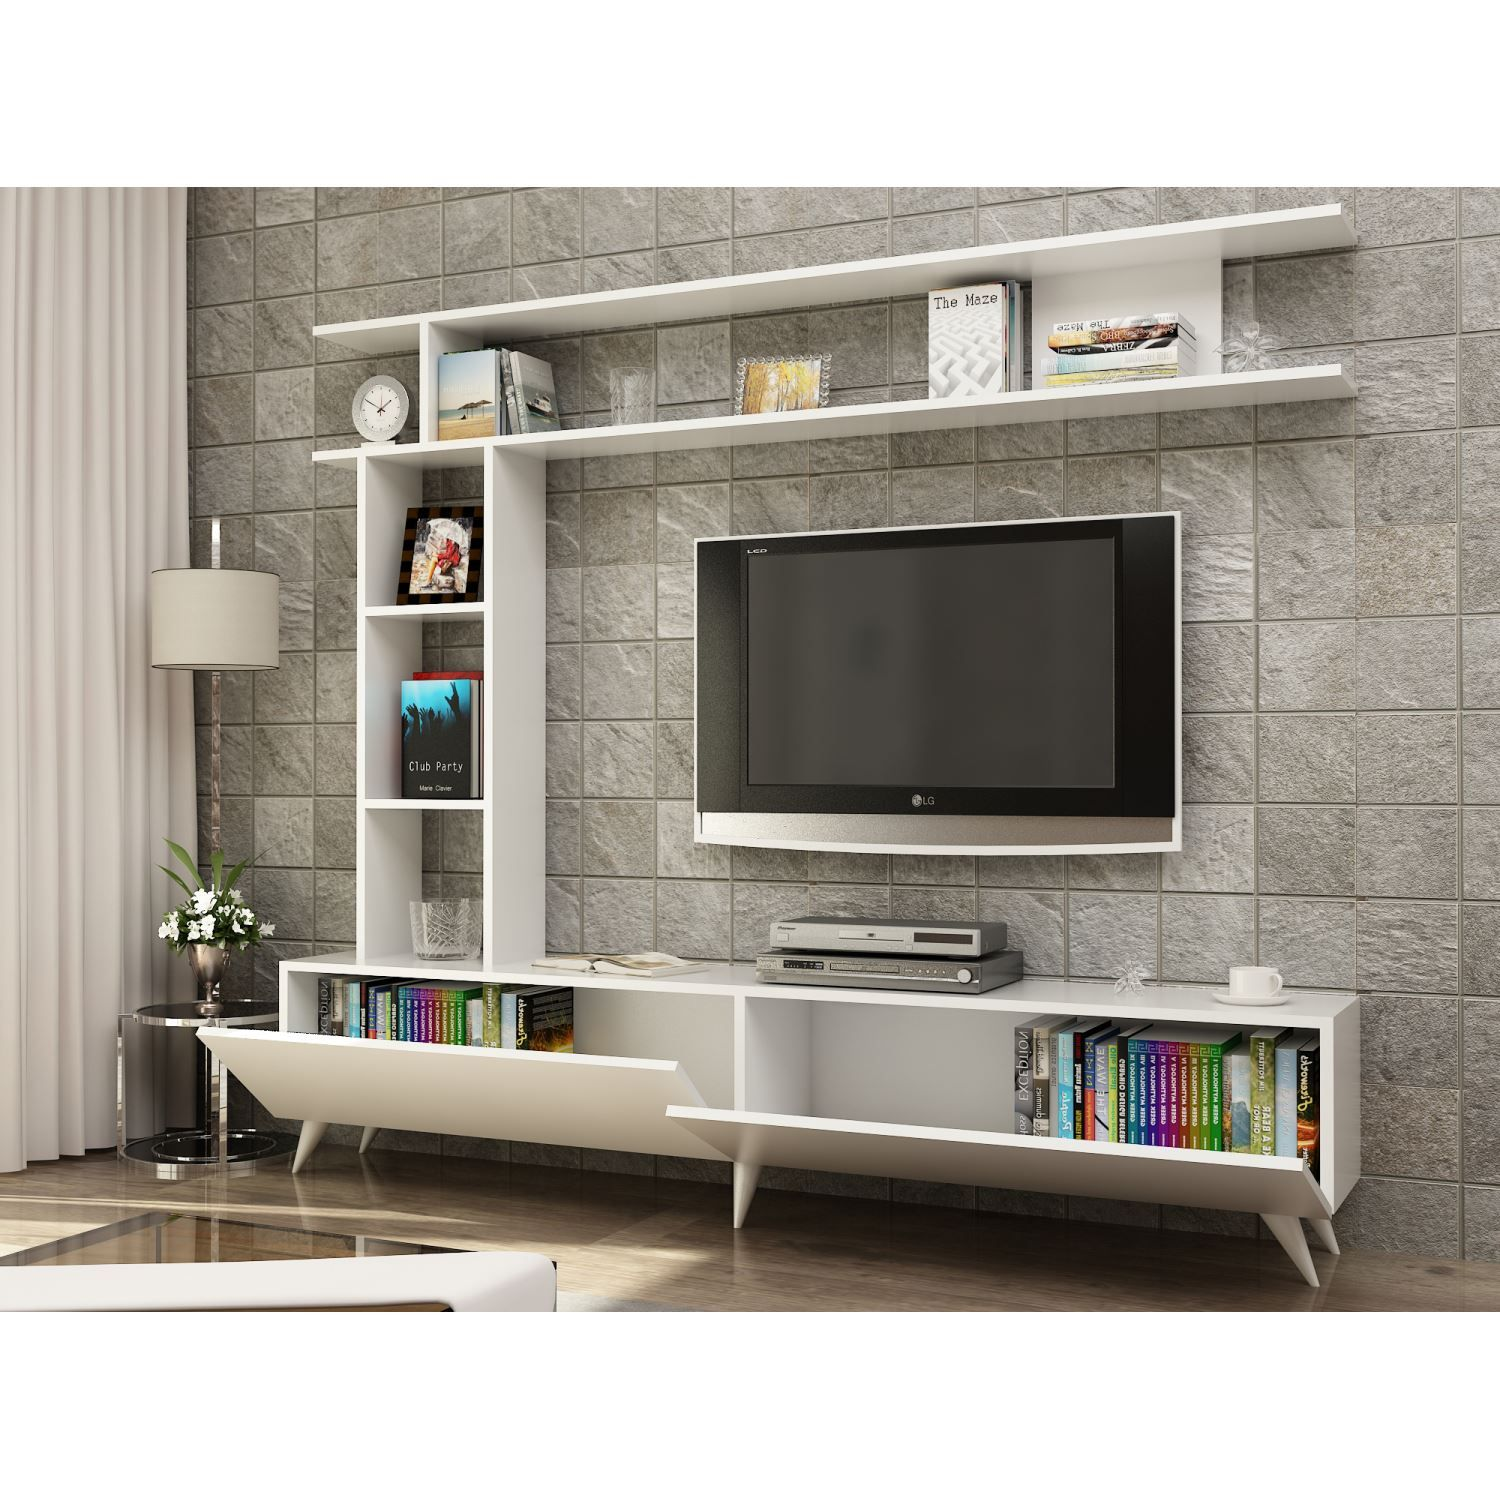 Endizayn Angel Tv Nitesi Ev Dekorasyonu Pinterest Tvs Tv  # Muebles Fiasini